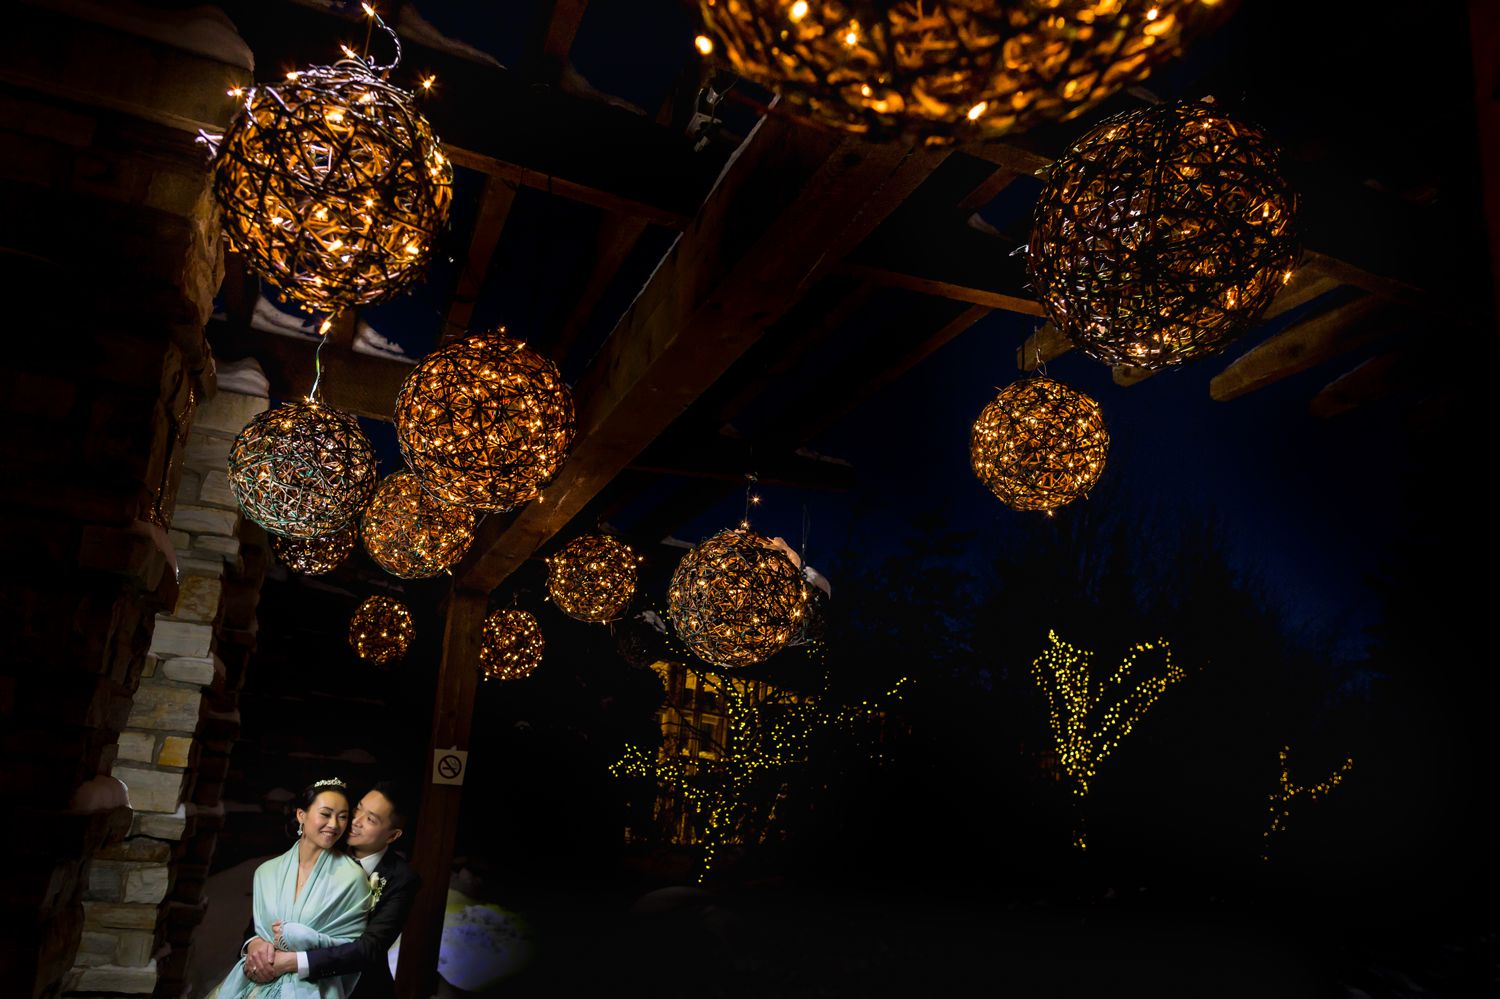 A night-time portrait of the bride and groom after their wedding at The Hilton Casino Lac Leamy